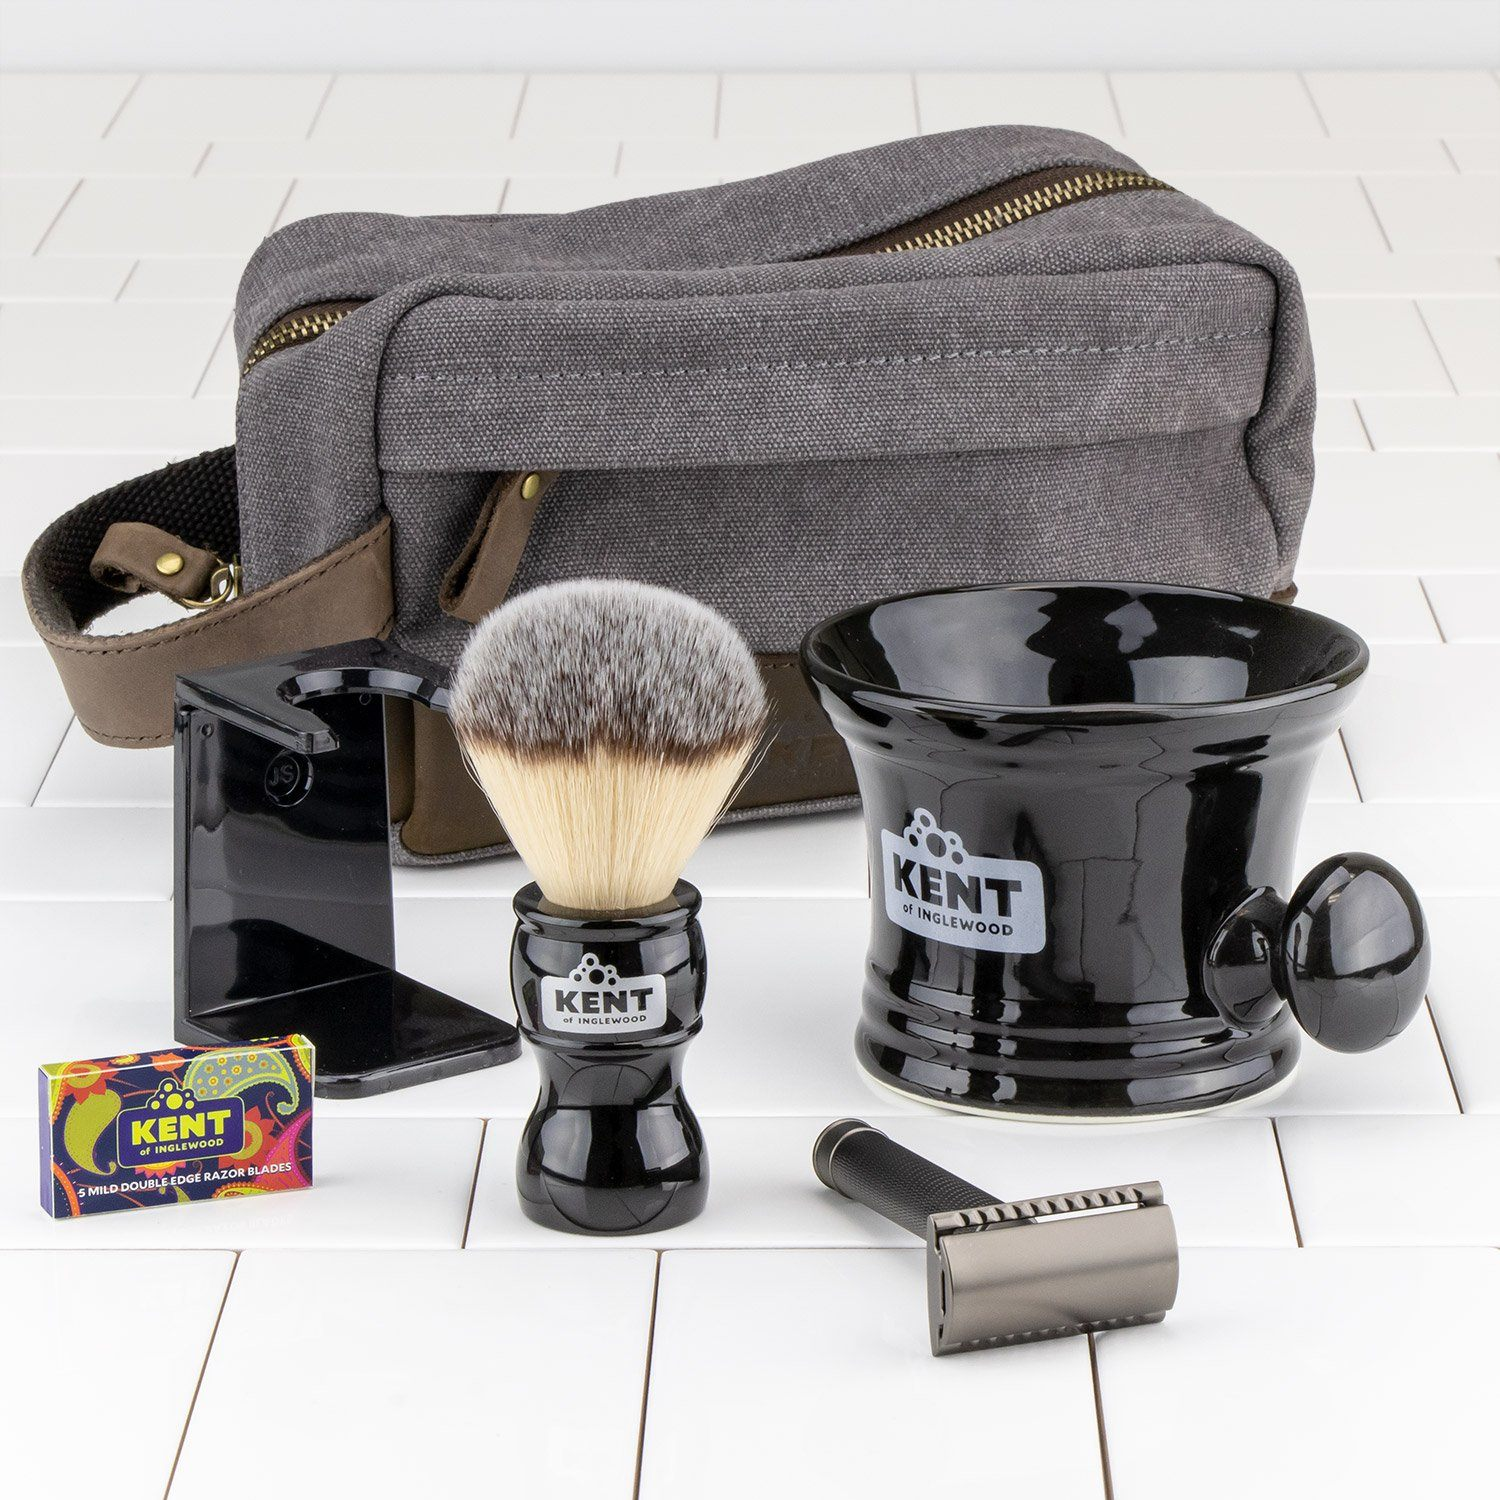 Kent of Inglewood Shaving Kit